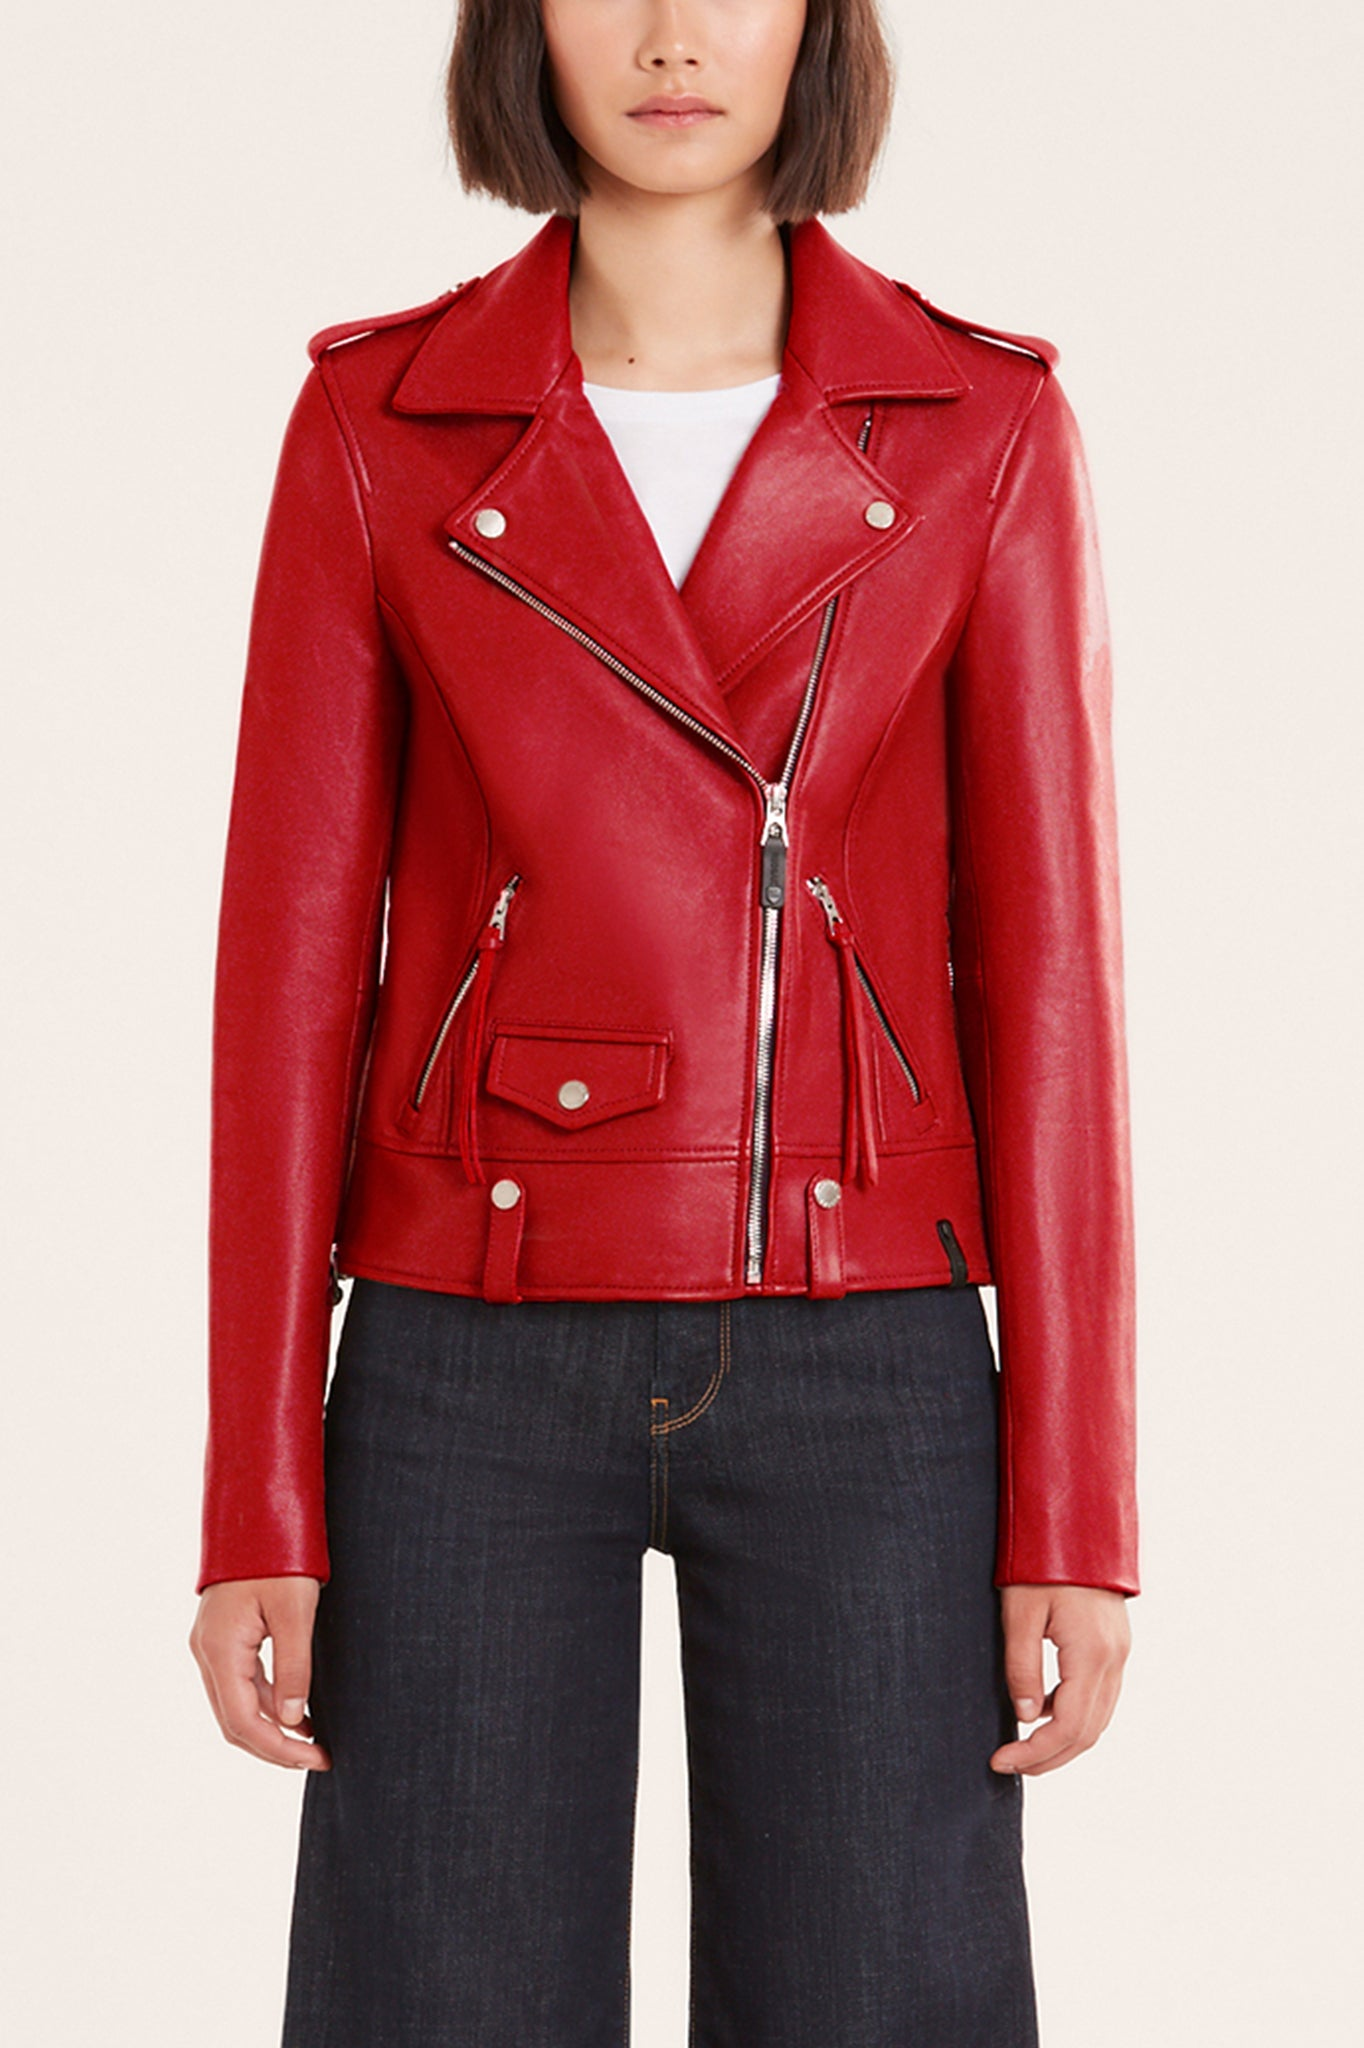 Rudsak Red Classic Leather Biker Jacket